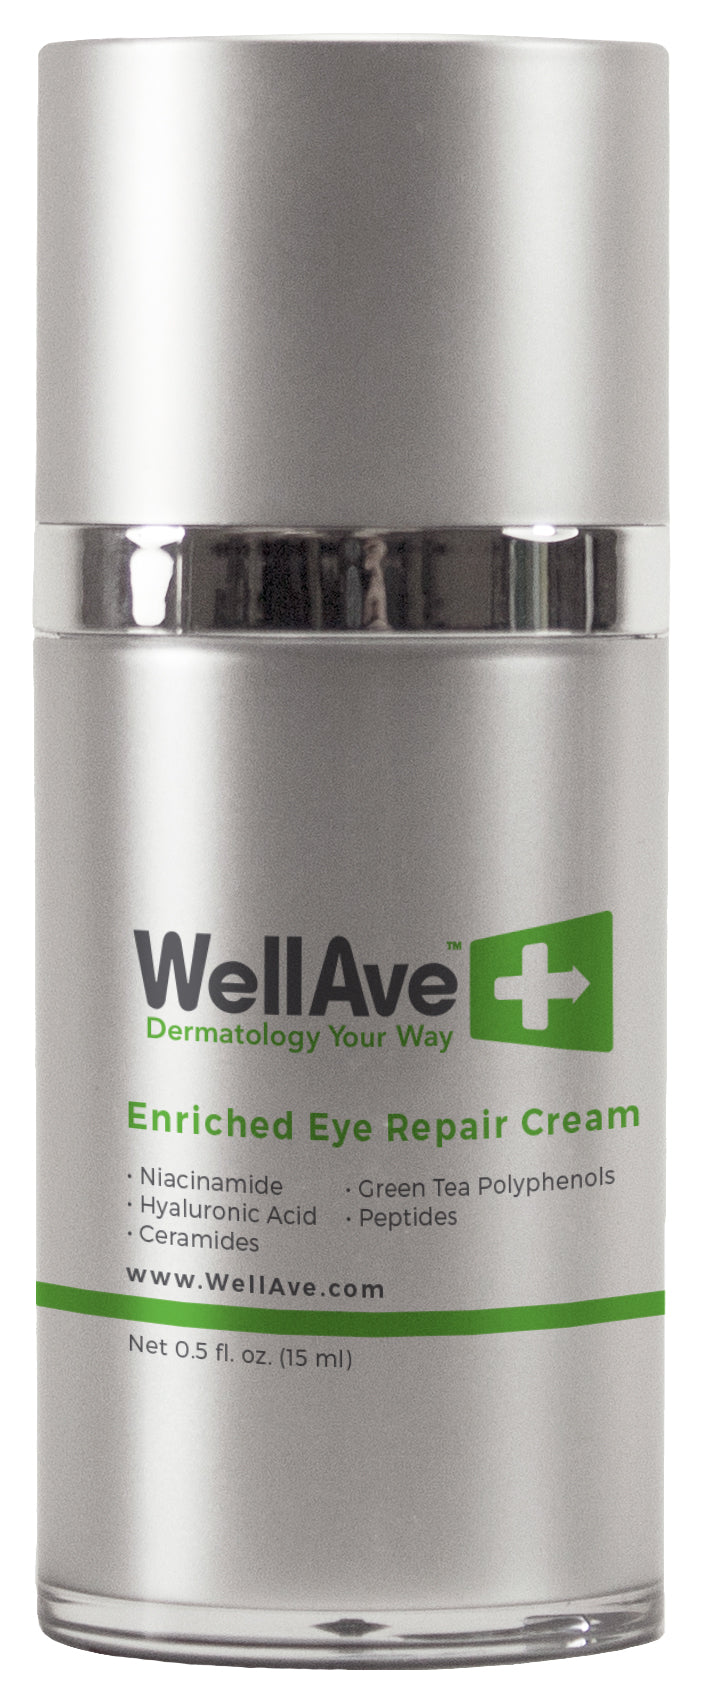 Enriched Eye Repair Cream